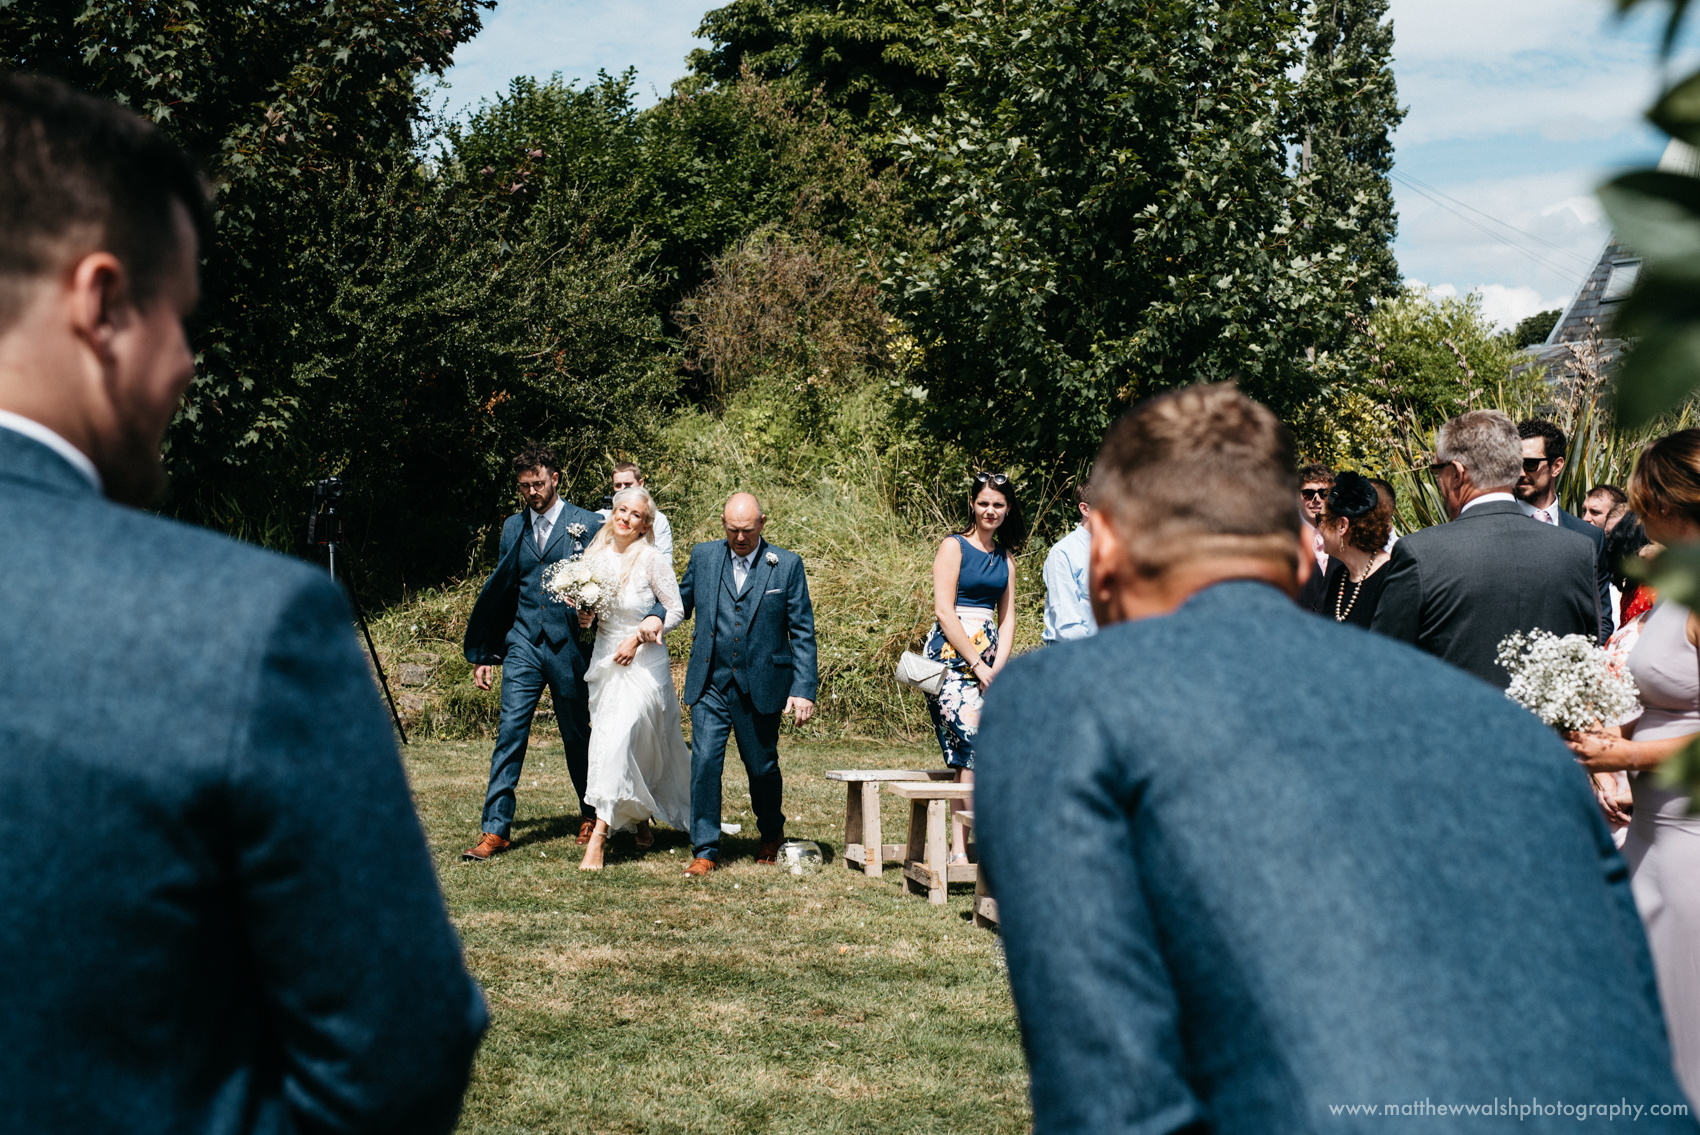 The groom is feeling very lucky and emotional as he first sees is bride walking down the isle